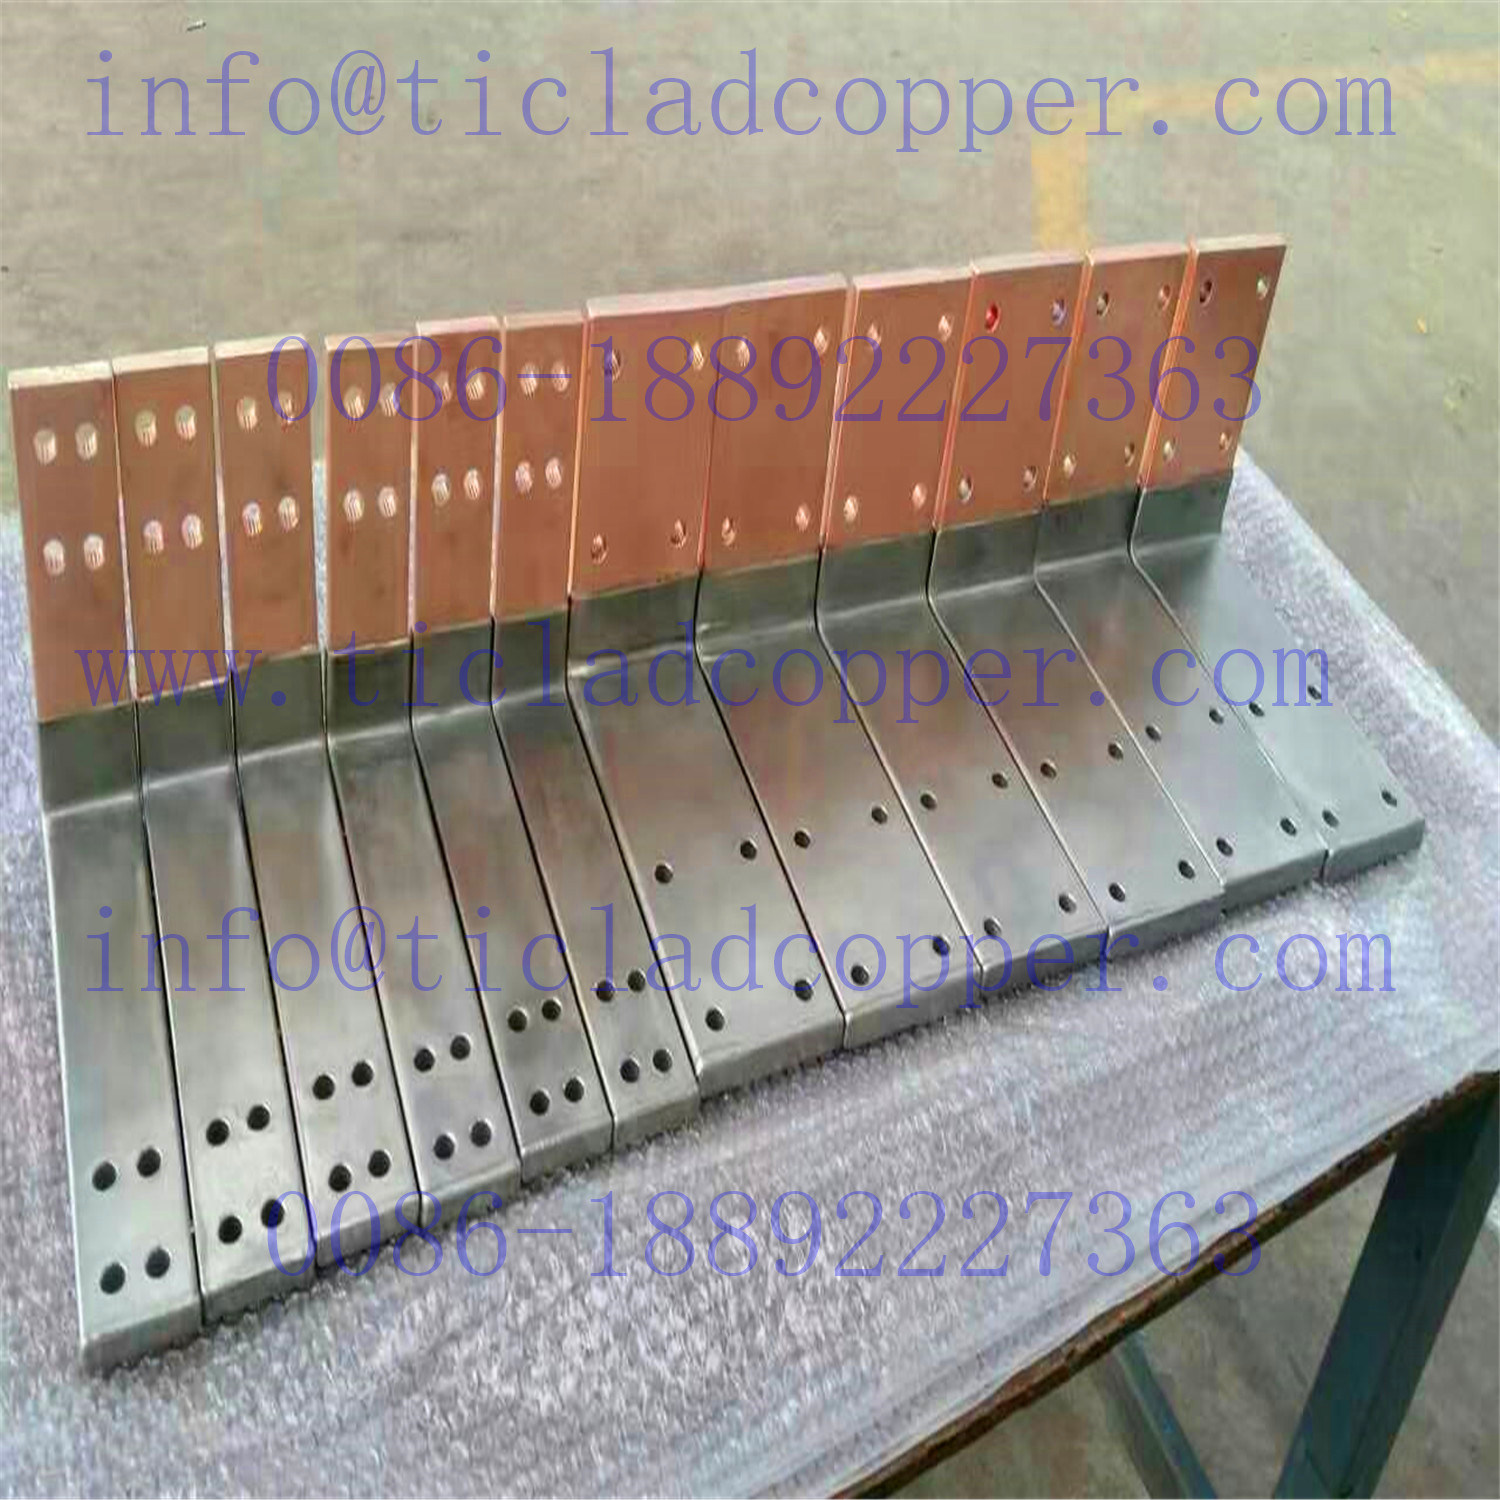 Precut Titanium Clad Copper Anode Hanger Bar Connector